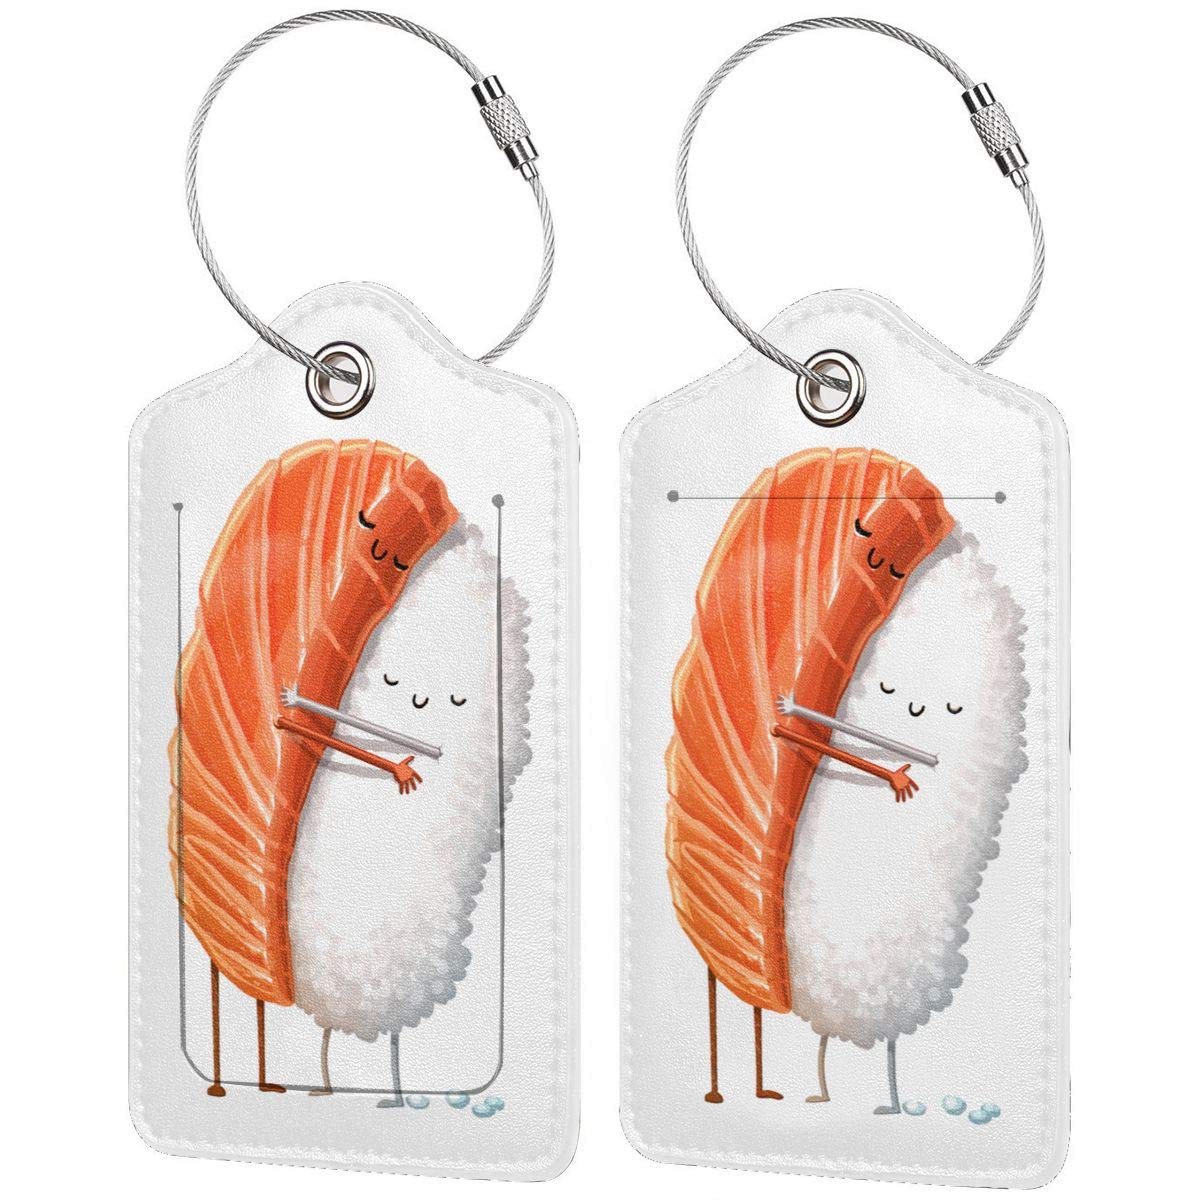 Sushi Hug Travel Luggage Tags With Full Privacy Cover Leather Case And Stainless Steel Loop